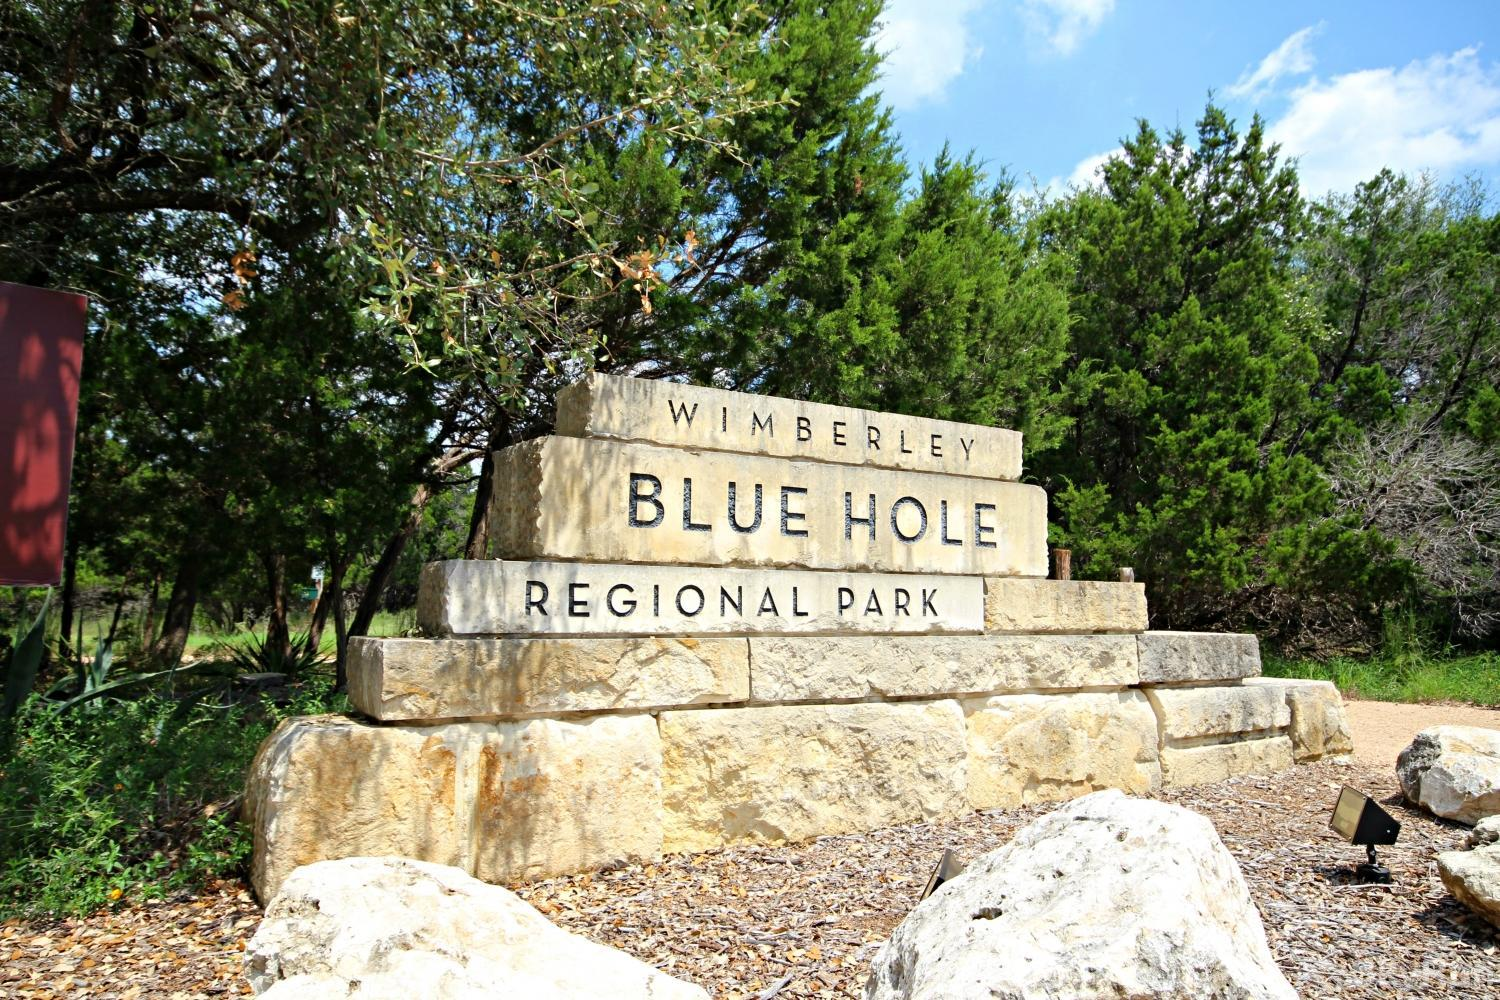 LITTLE ROCK 'N' WOOD Minutes From Blue Hole Park